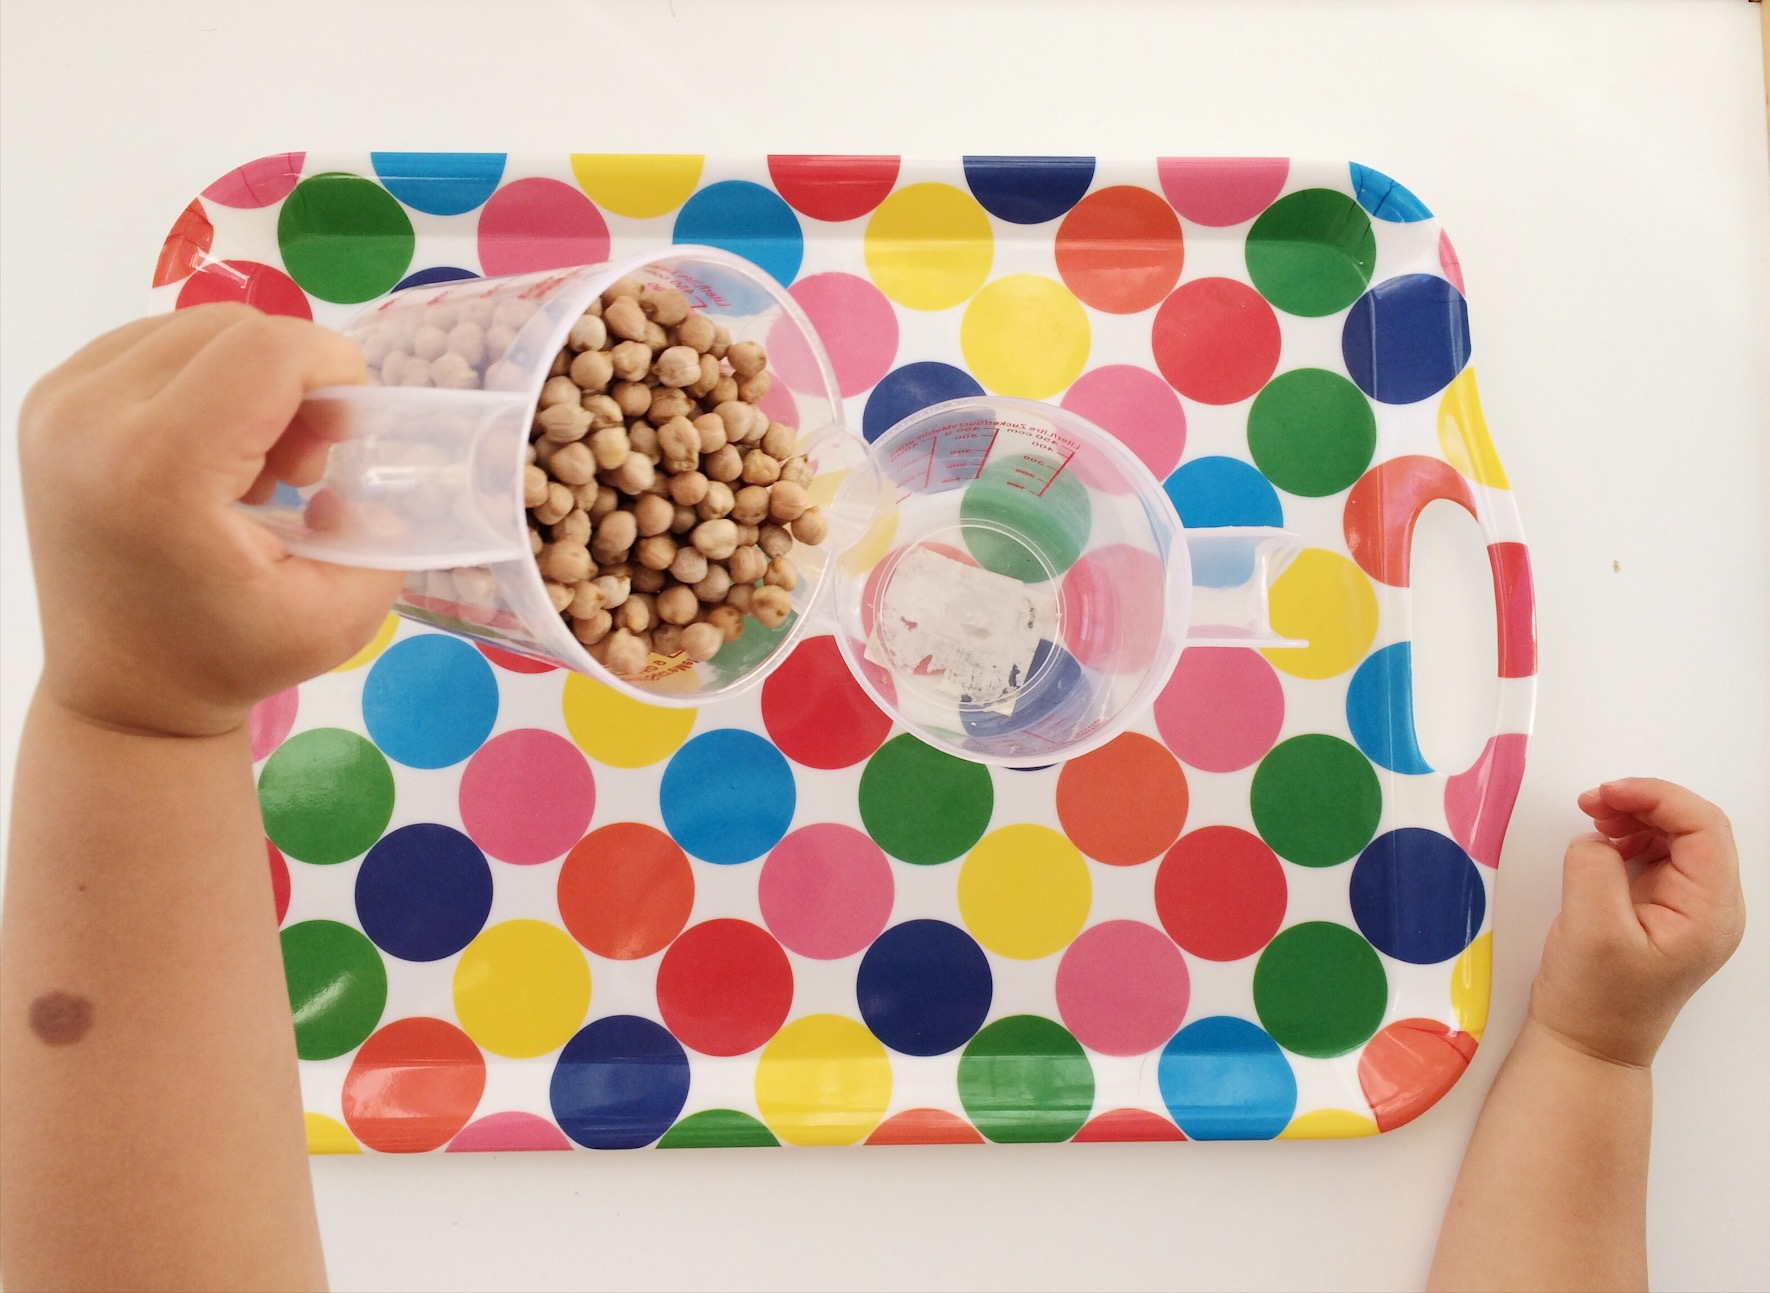 child pouring beans from one jug into another on colourful tray